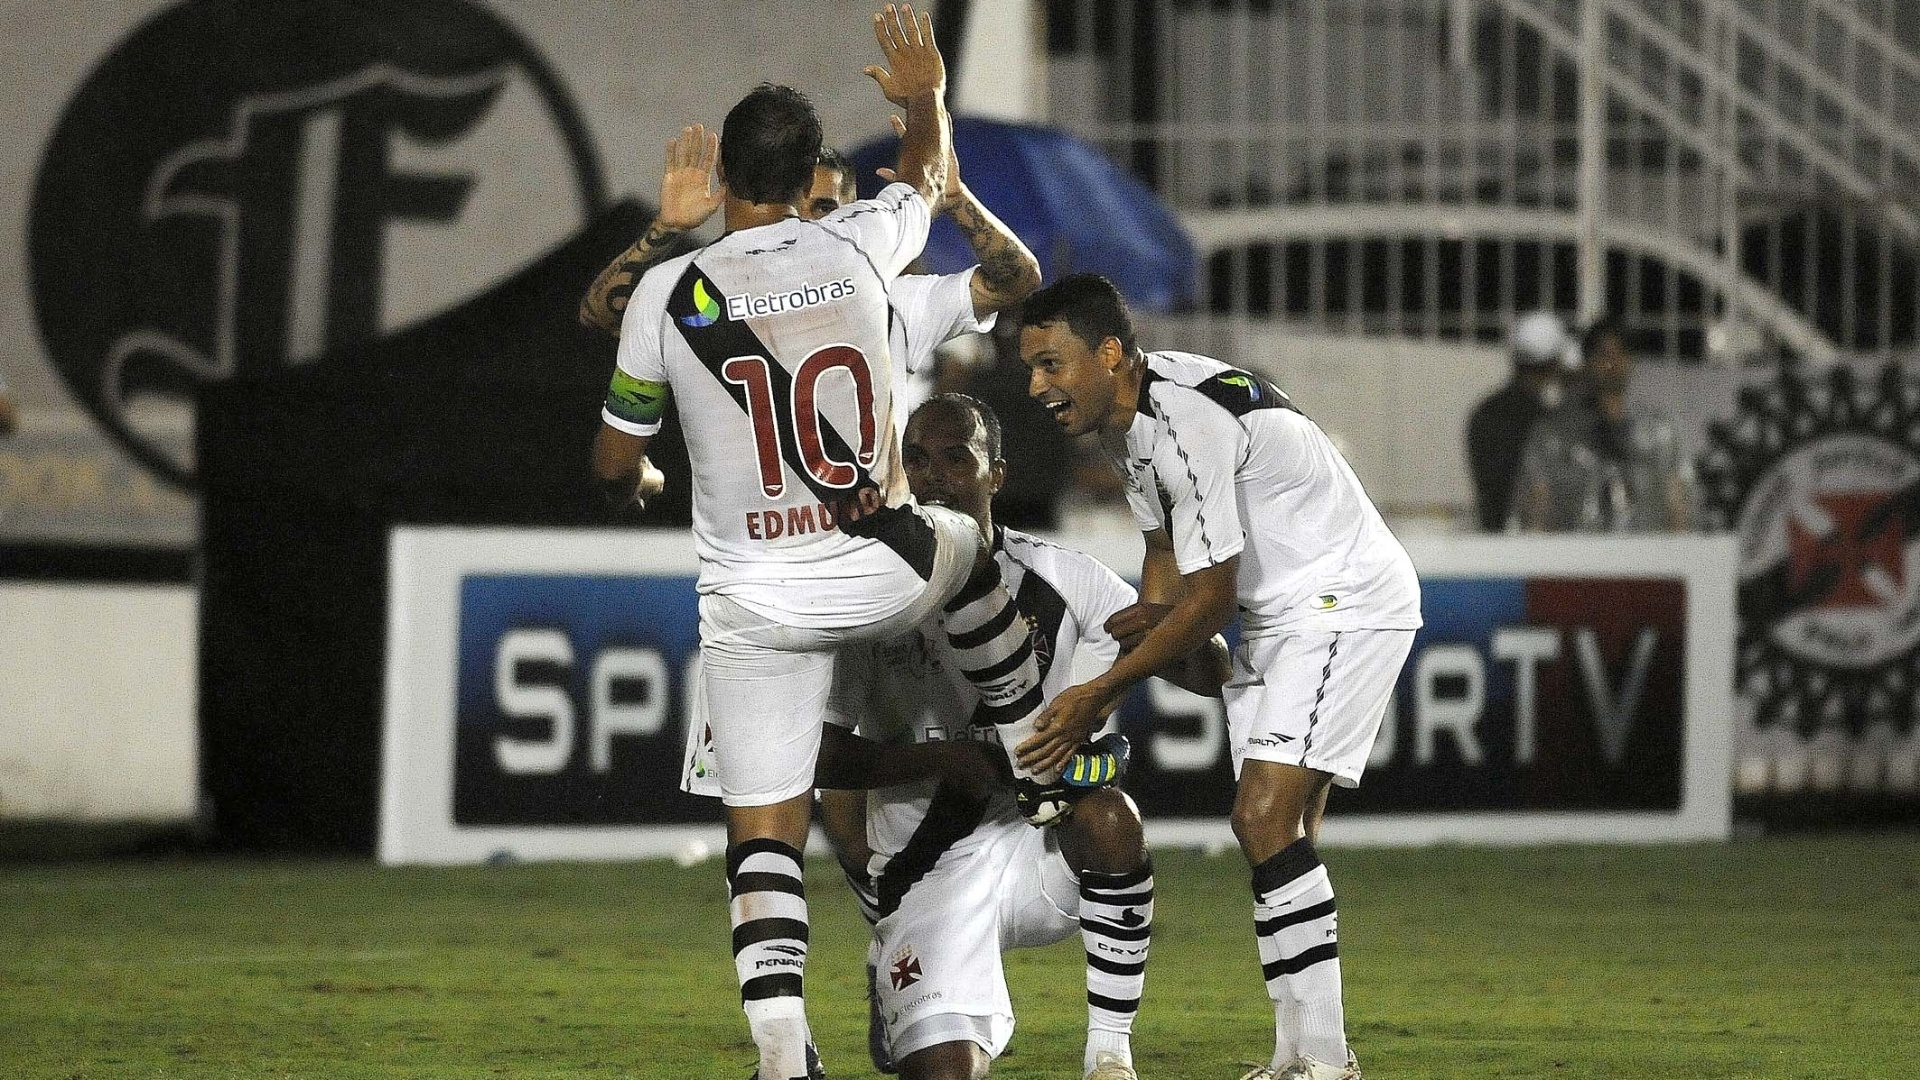 Jogadores do Vasco engraxam a chuteira de Edmundo na partida de despedida do atacante com a camisa do clube carioca